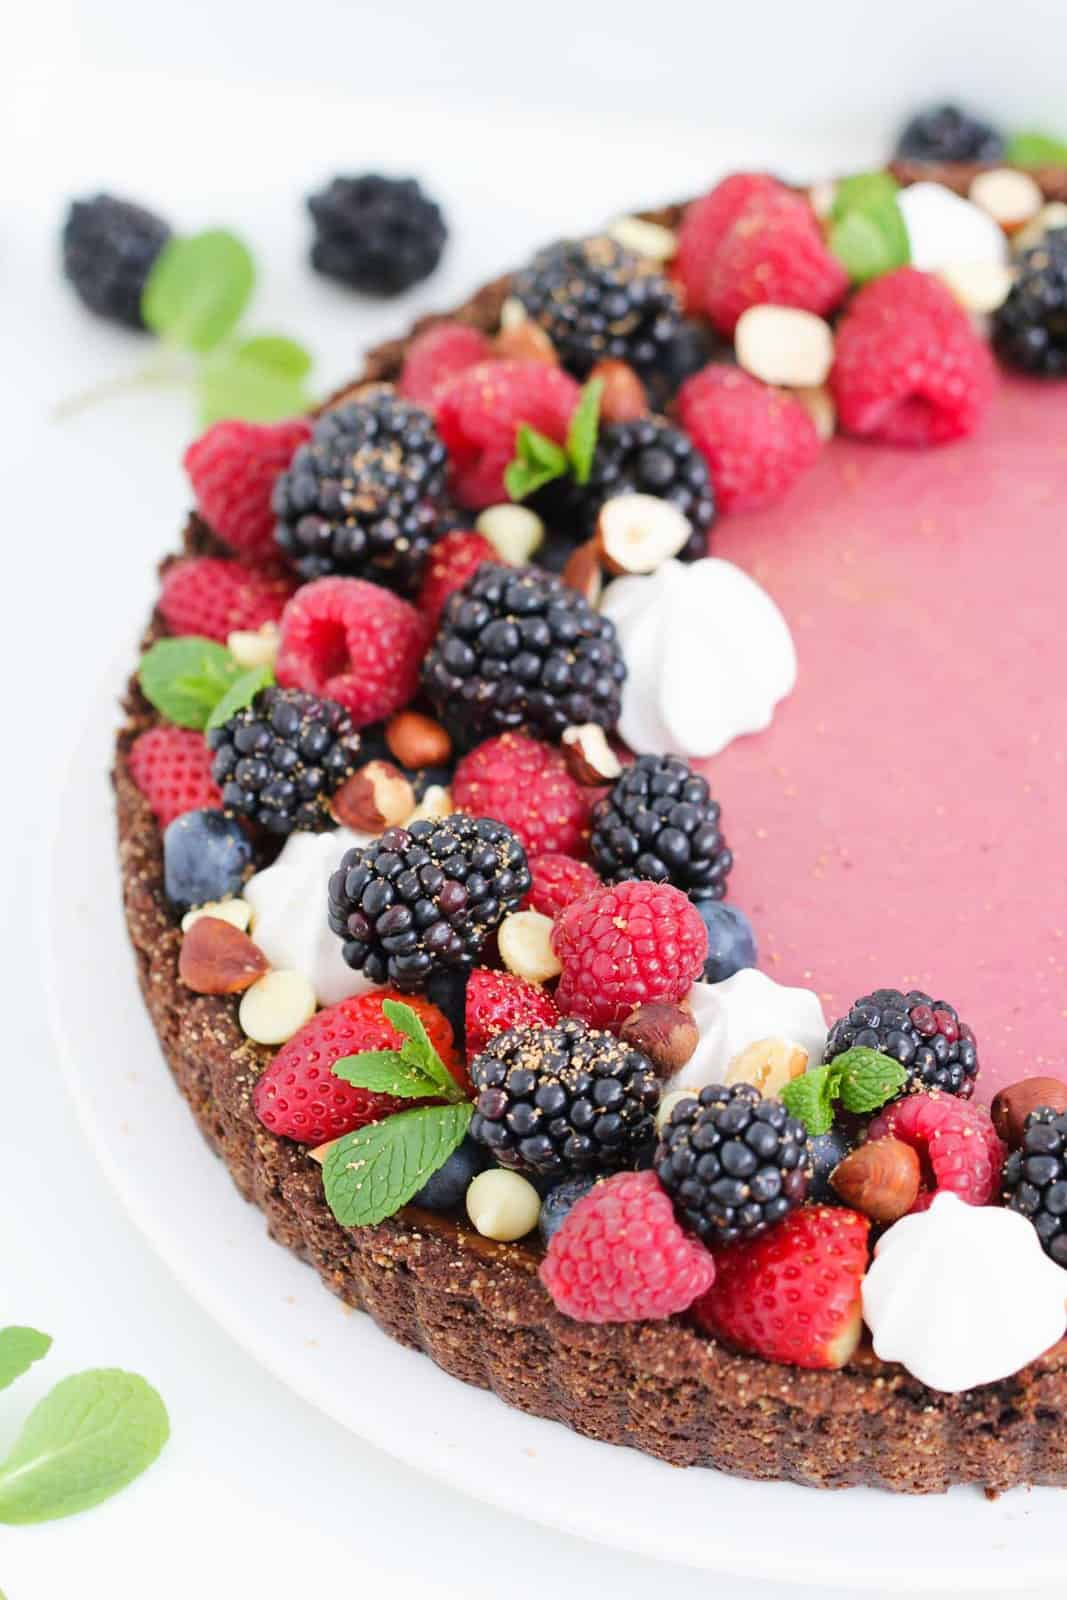 A Blackberry Cheesecake Tart decorated with blackberries and raspberries